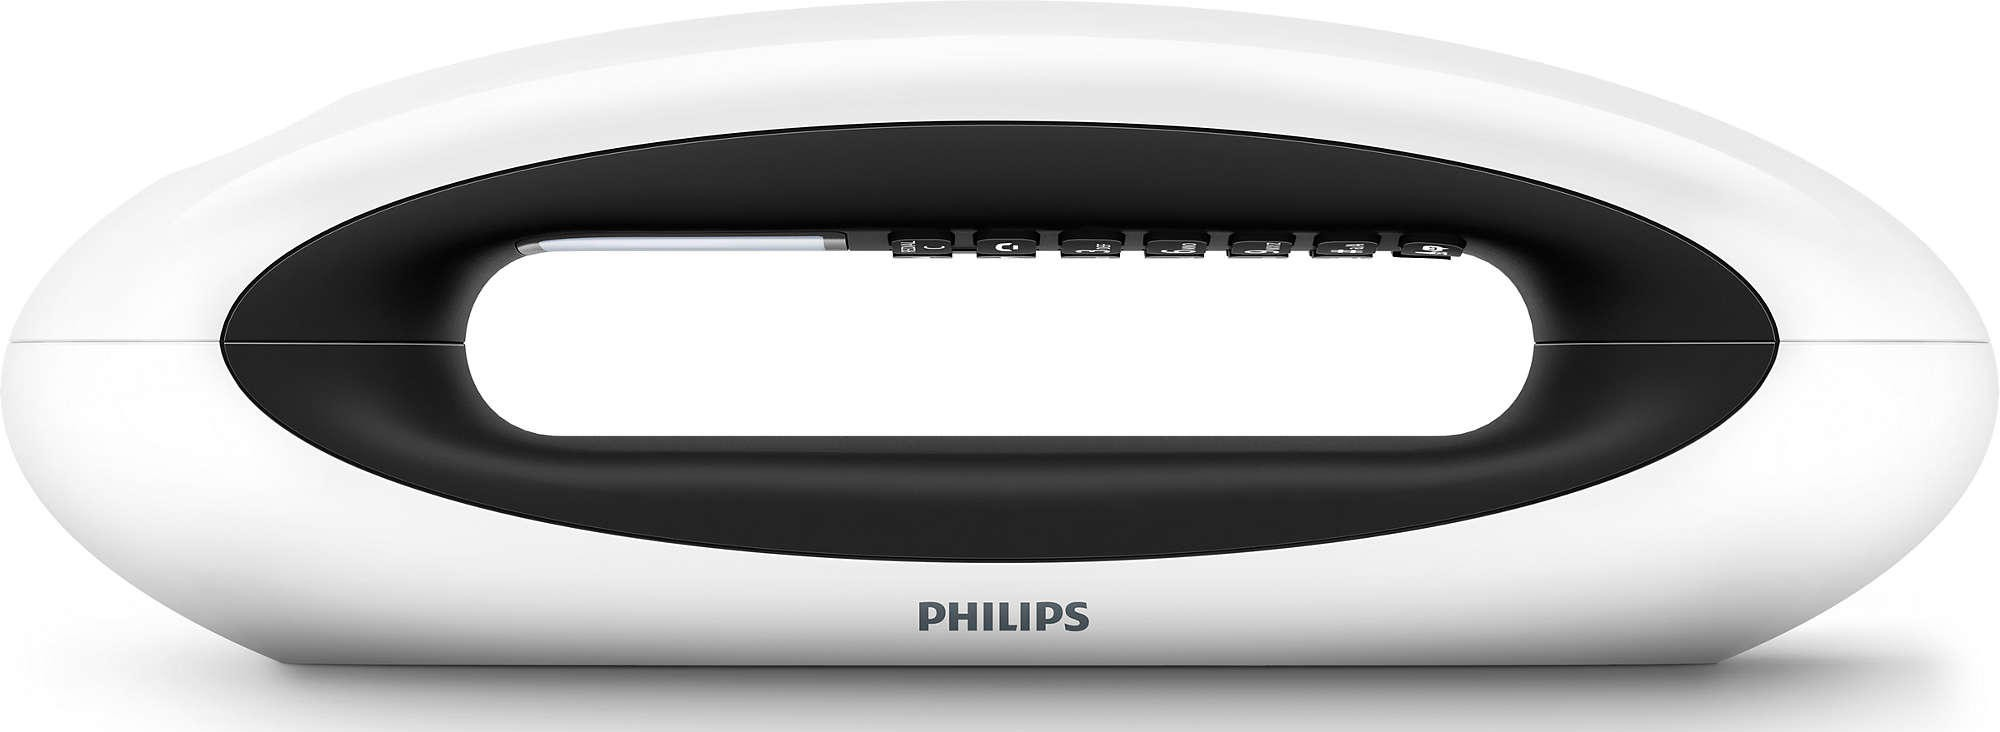 PHILIPS - M 5651 WG/FR